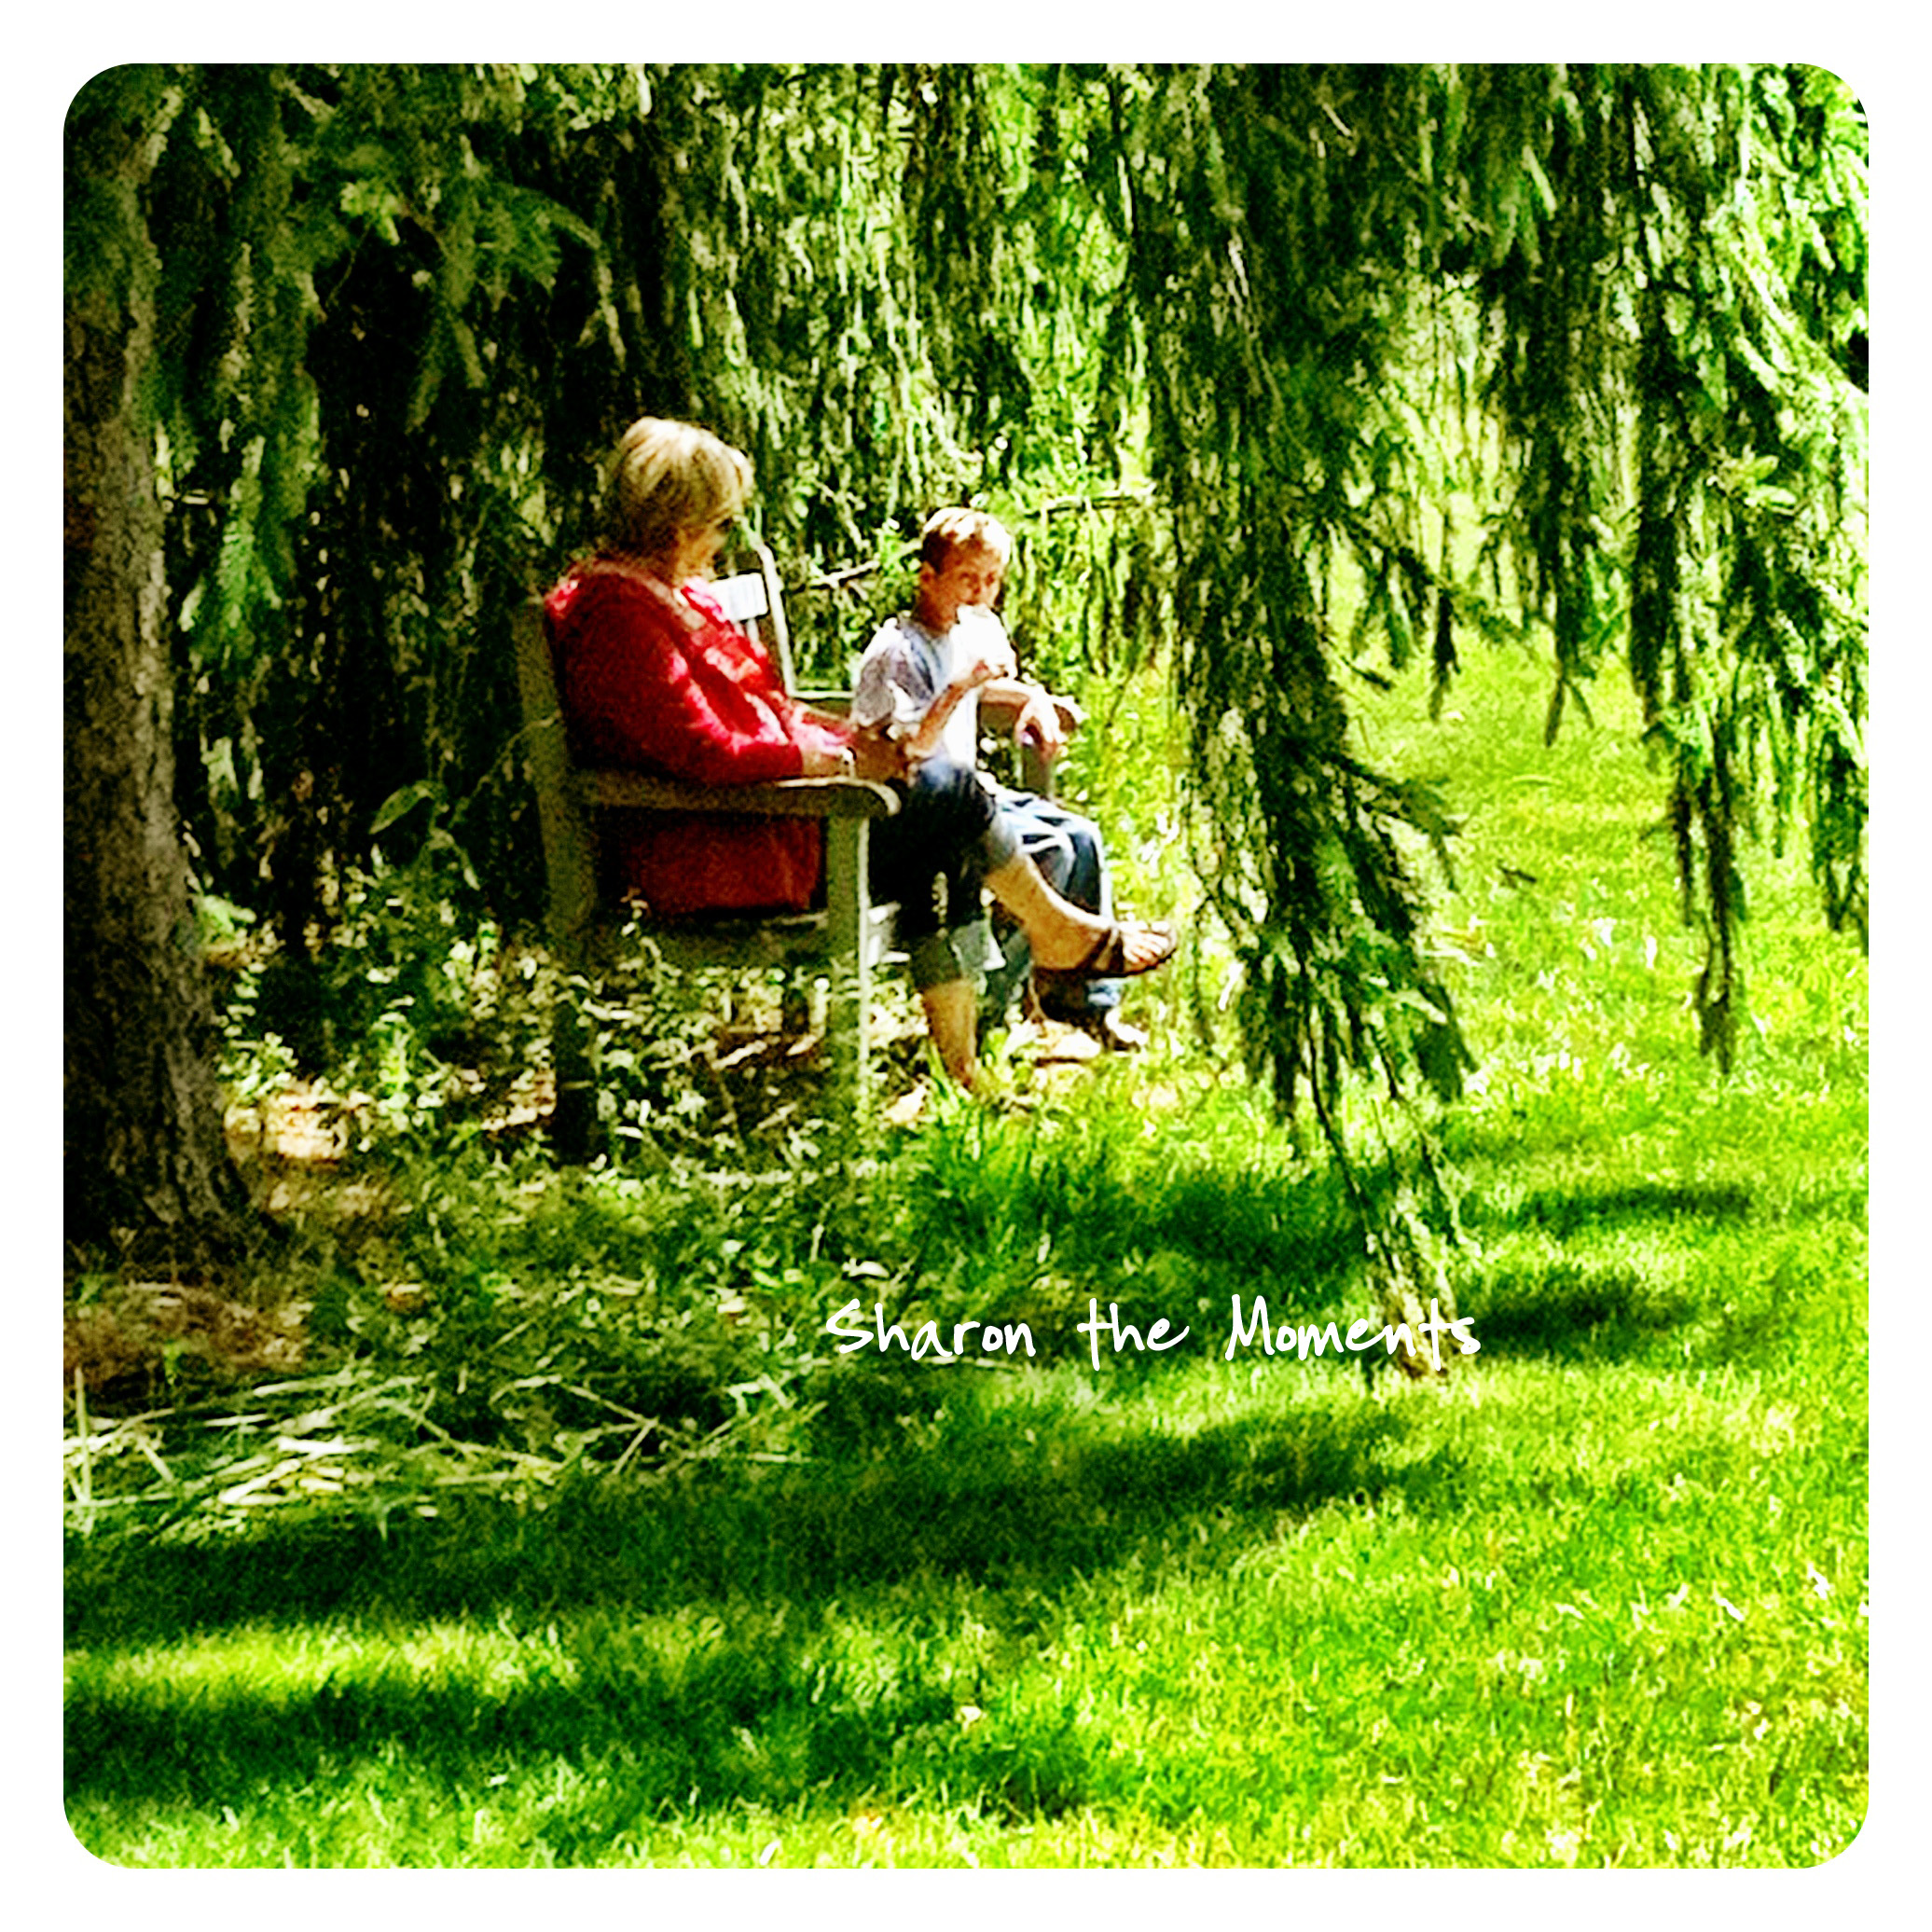 iPhoneography for Relaxing Sunday Mornings Inniswood Metro Park|Sharon the Moments blog